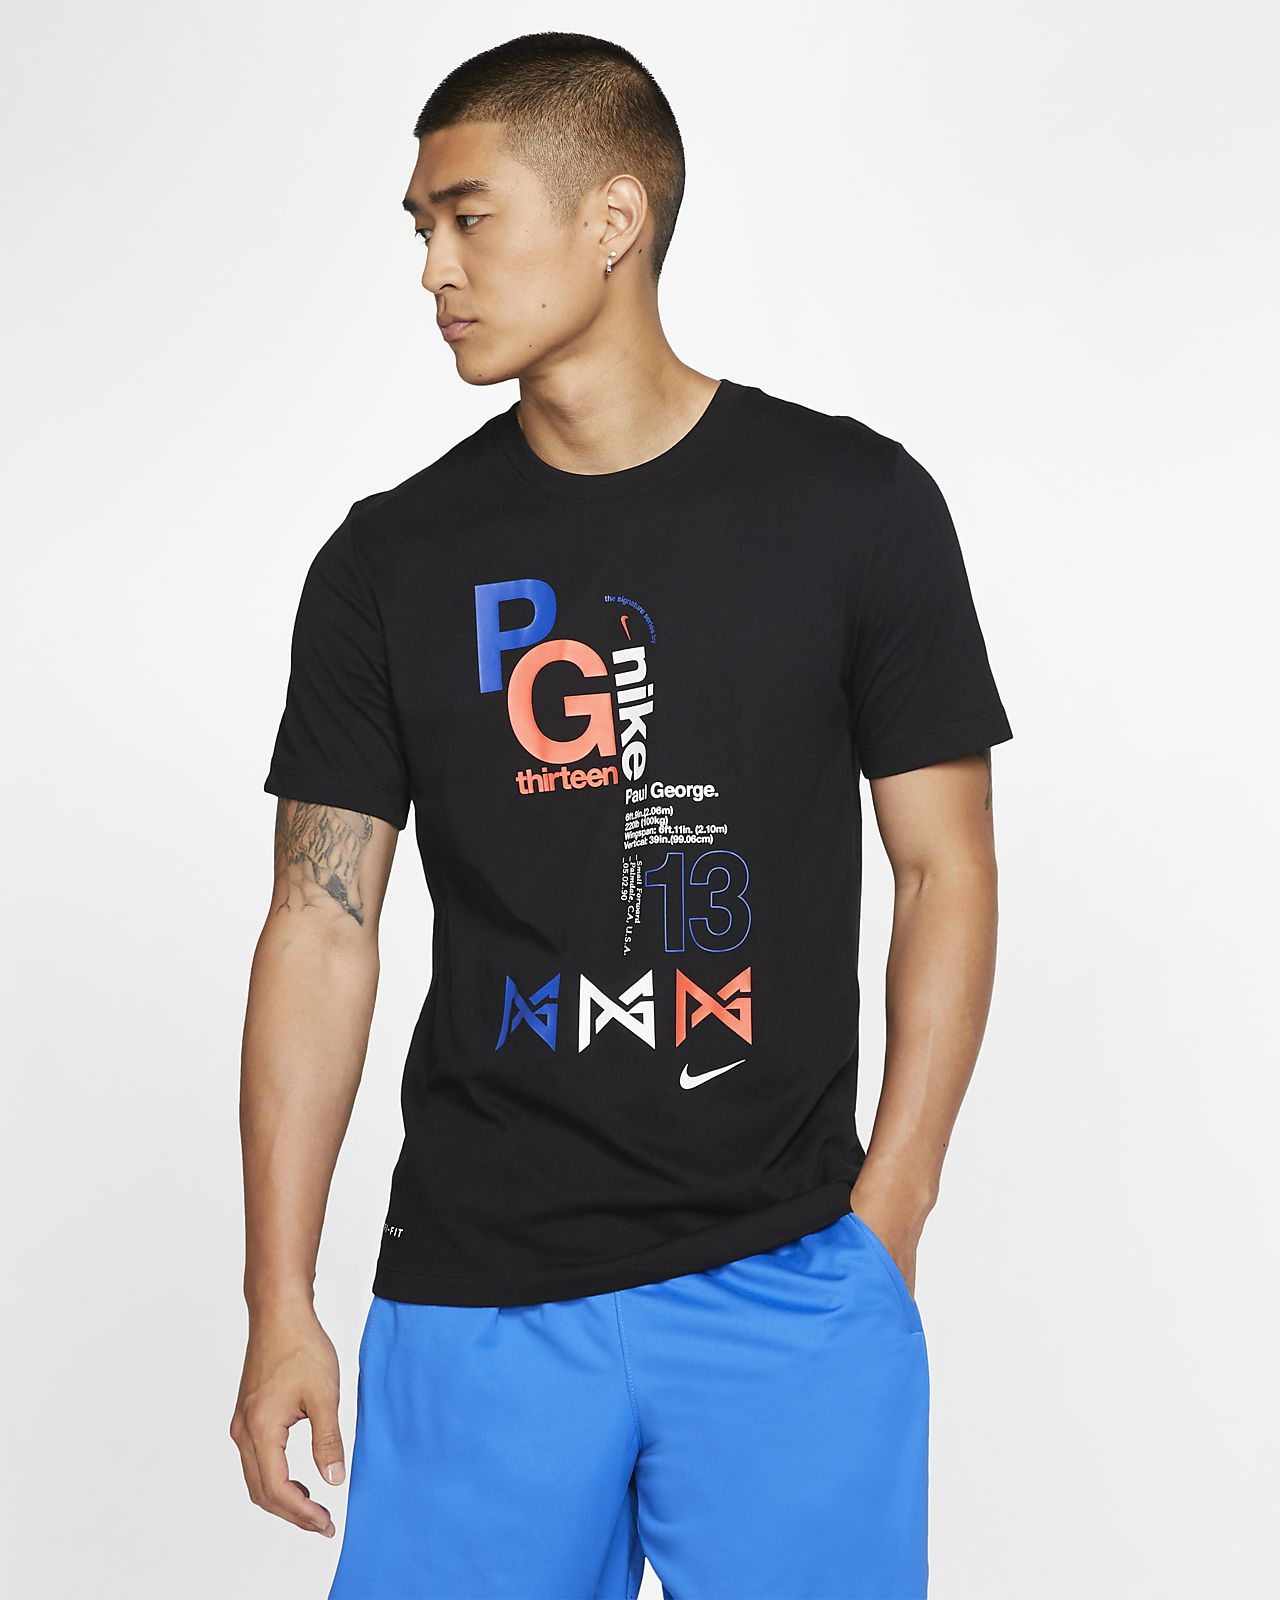 Nike Dri-FIT PG Men's Basketball T-Shirt